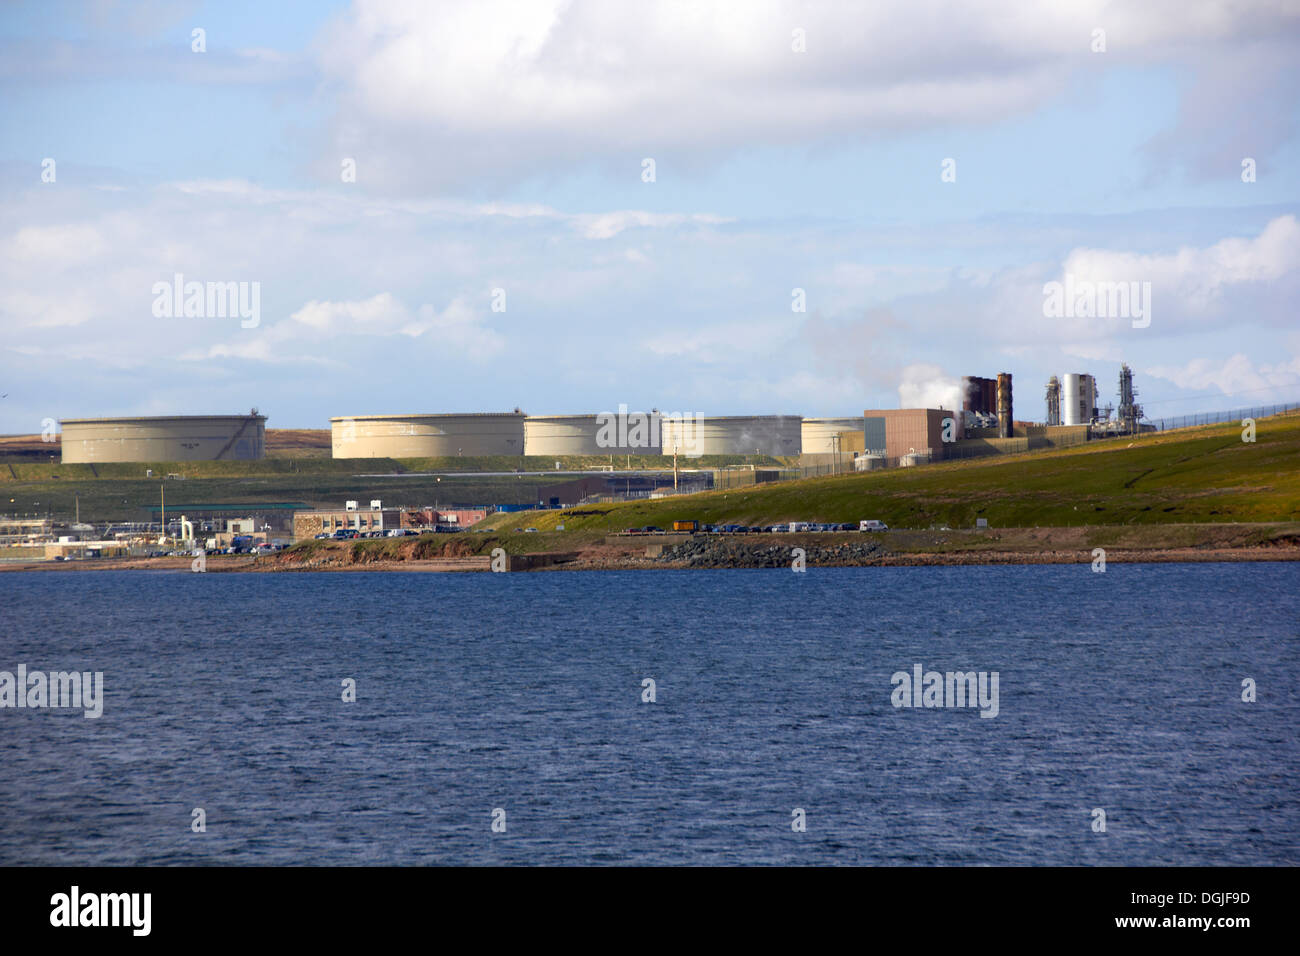 North Sea oil terminal at Sullom Voe. - Stock Image